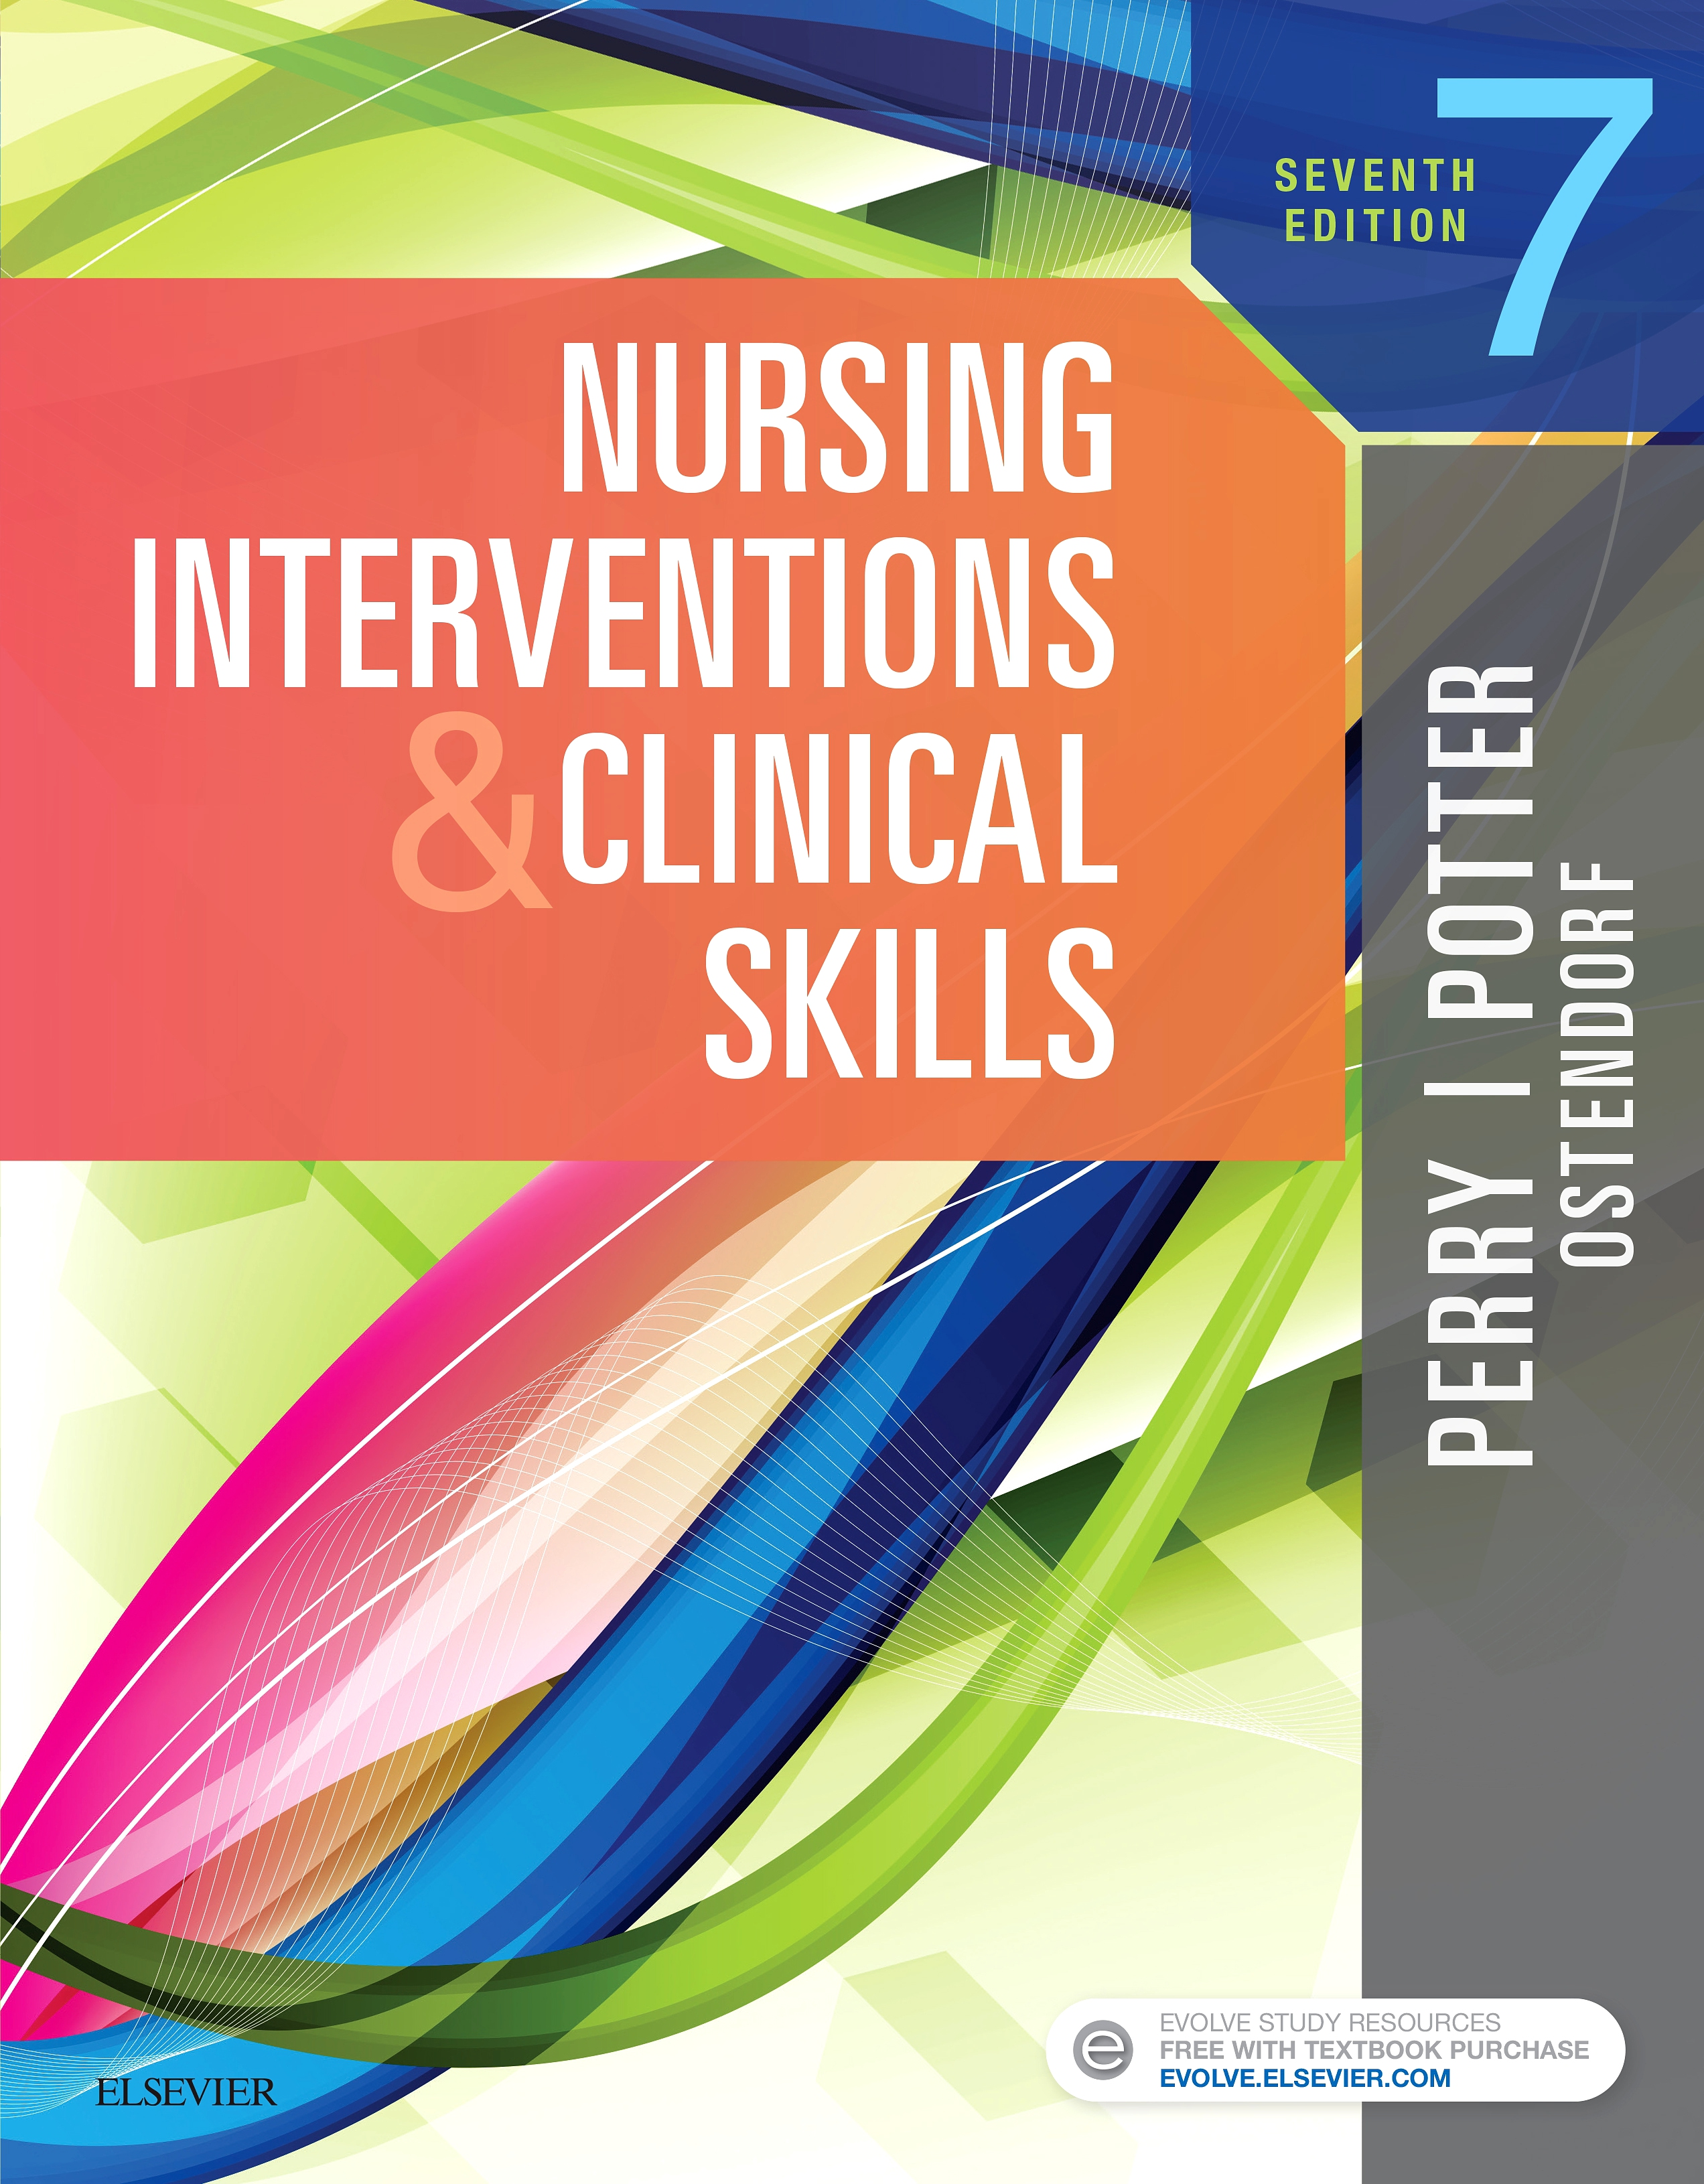 Evolve Resources for Nursing Interventions & Clinical Skills, 7th Edition